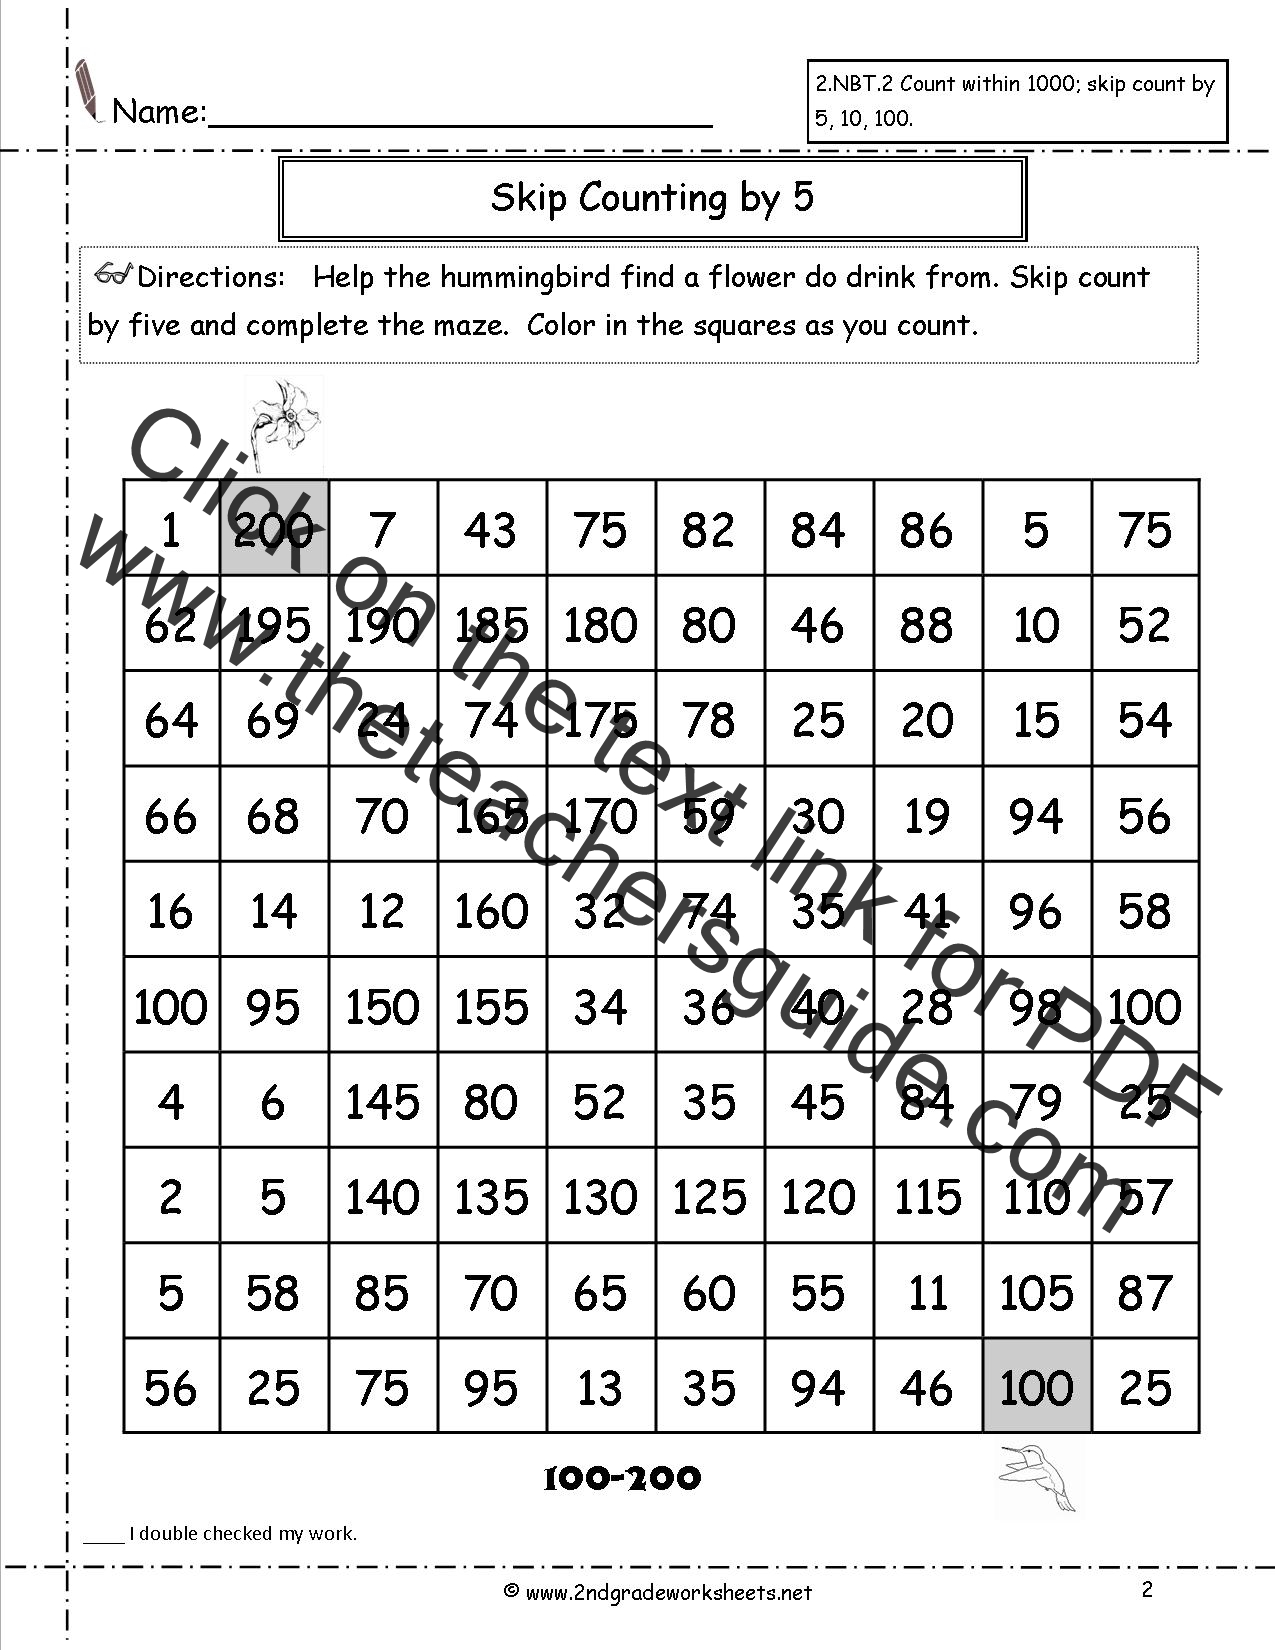 skip counting by tens worksheet first grade kindergarten skip counting by tens worksheets 5. Black Bedroom Furniture Sets. Home Design Ideas